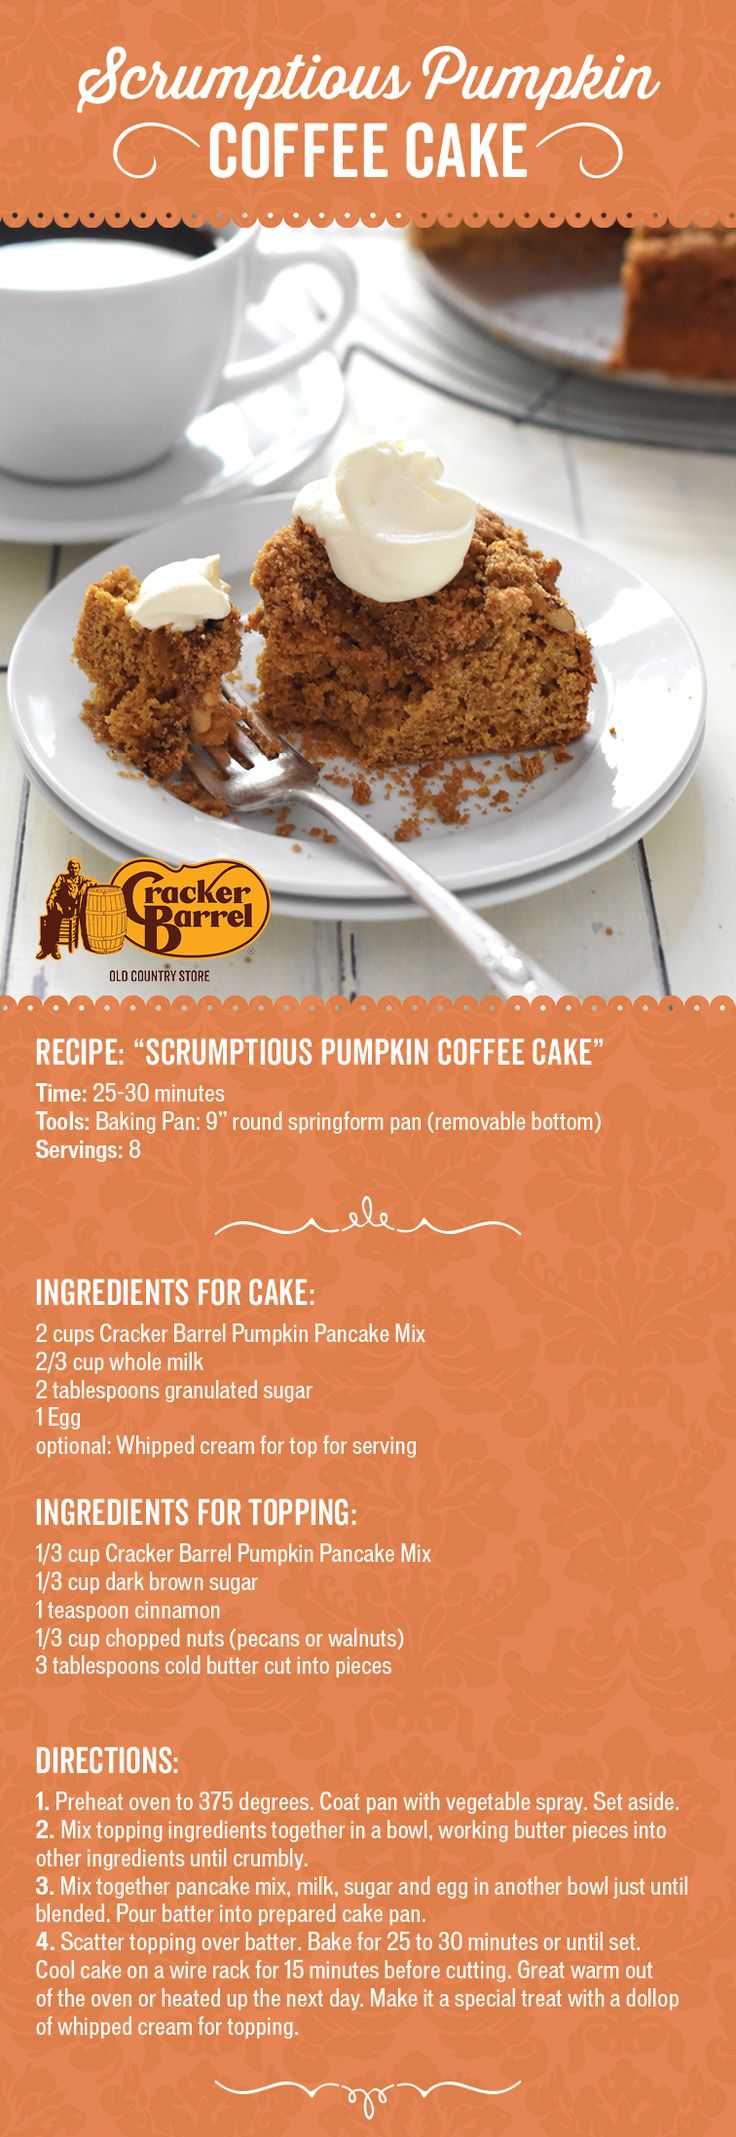 """Treat your family our house guests to this sweet brunch-time favorite with a pumpkin twist. For this Pumpkin Pancake Coffee Cake all you need is a 9"""" springform baking pan, our Cracker Barrel Pumpkin Pancake Mix, and a few other simple ingredients."""